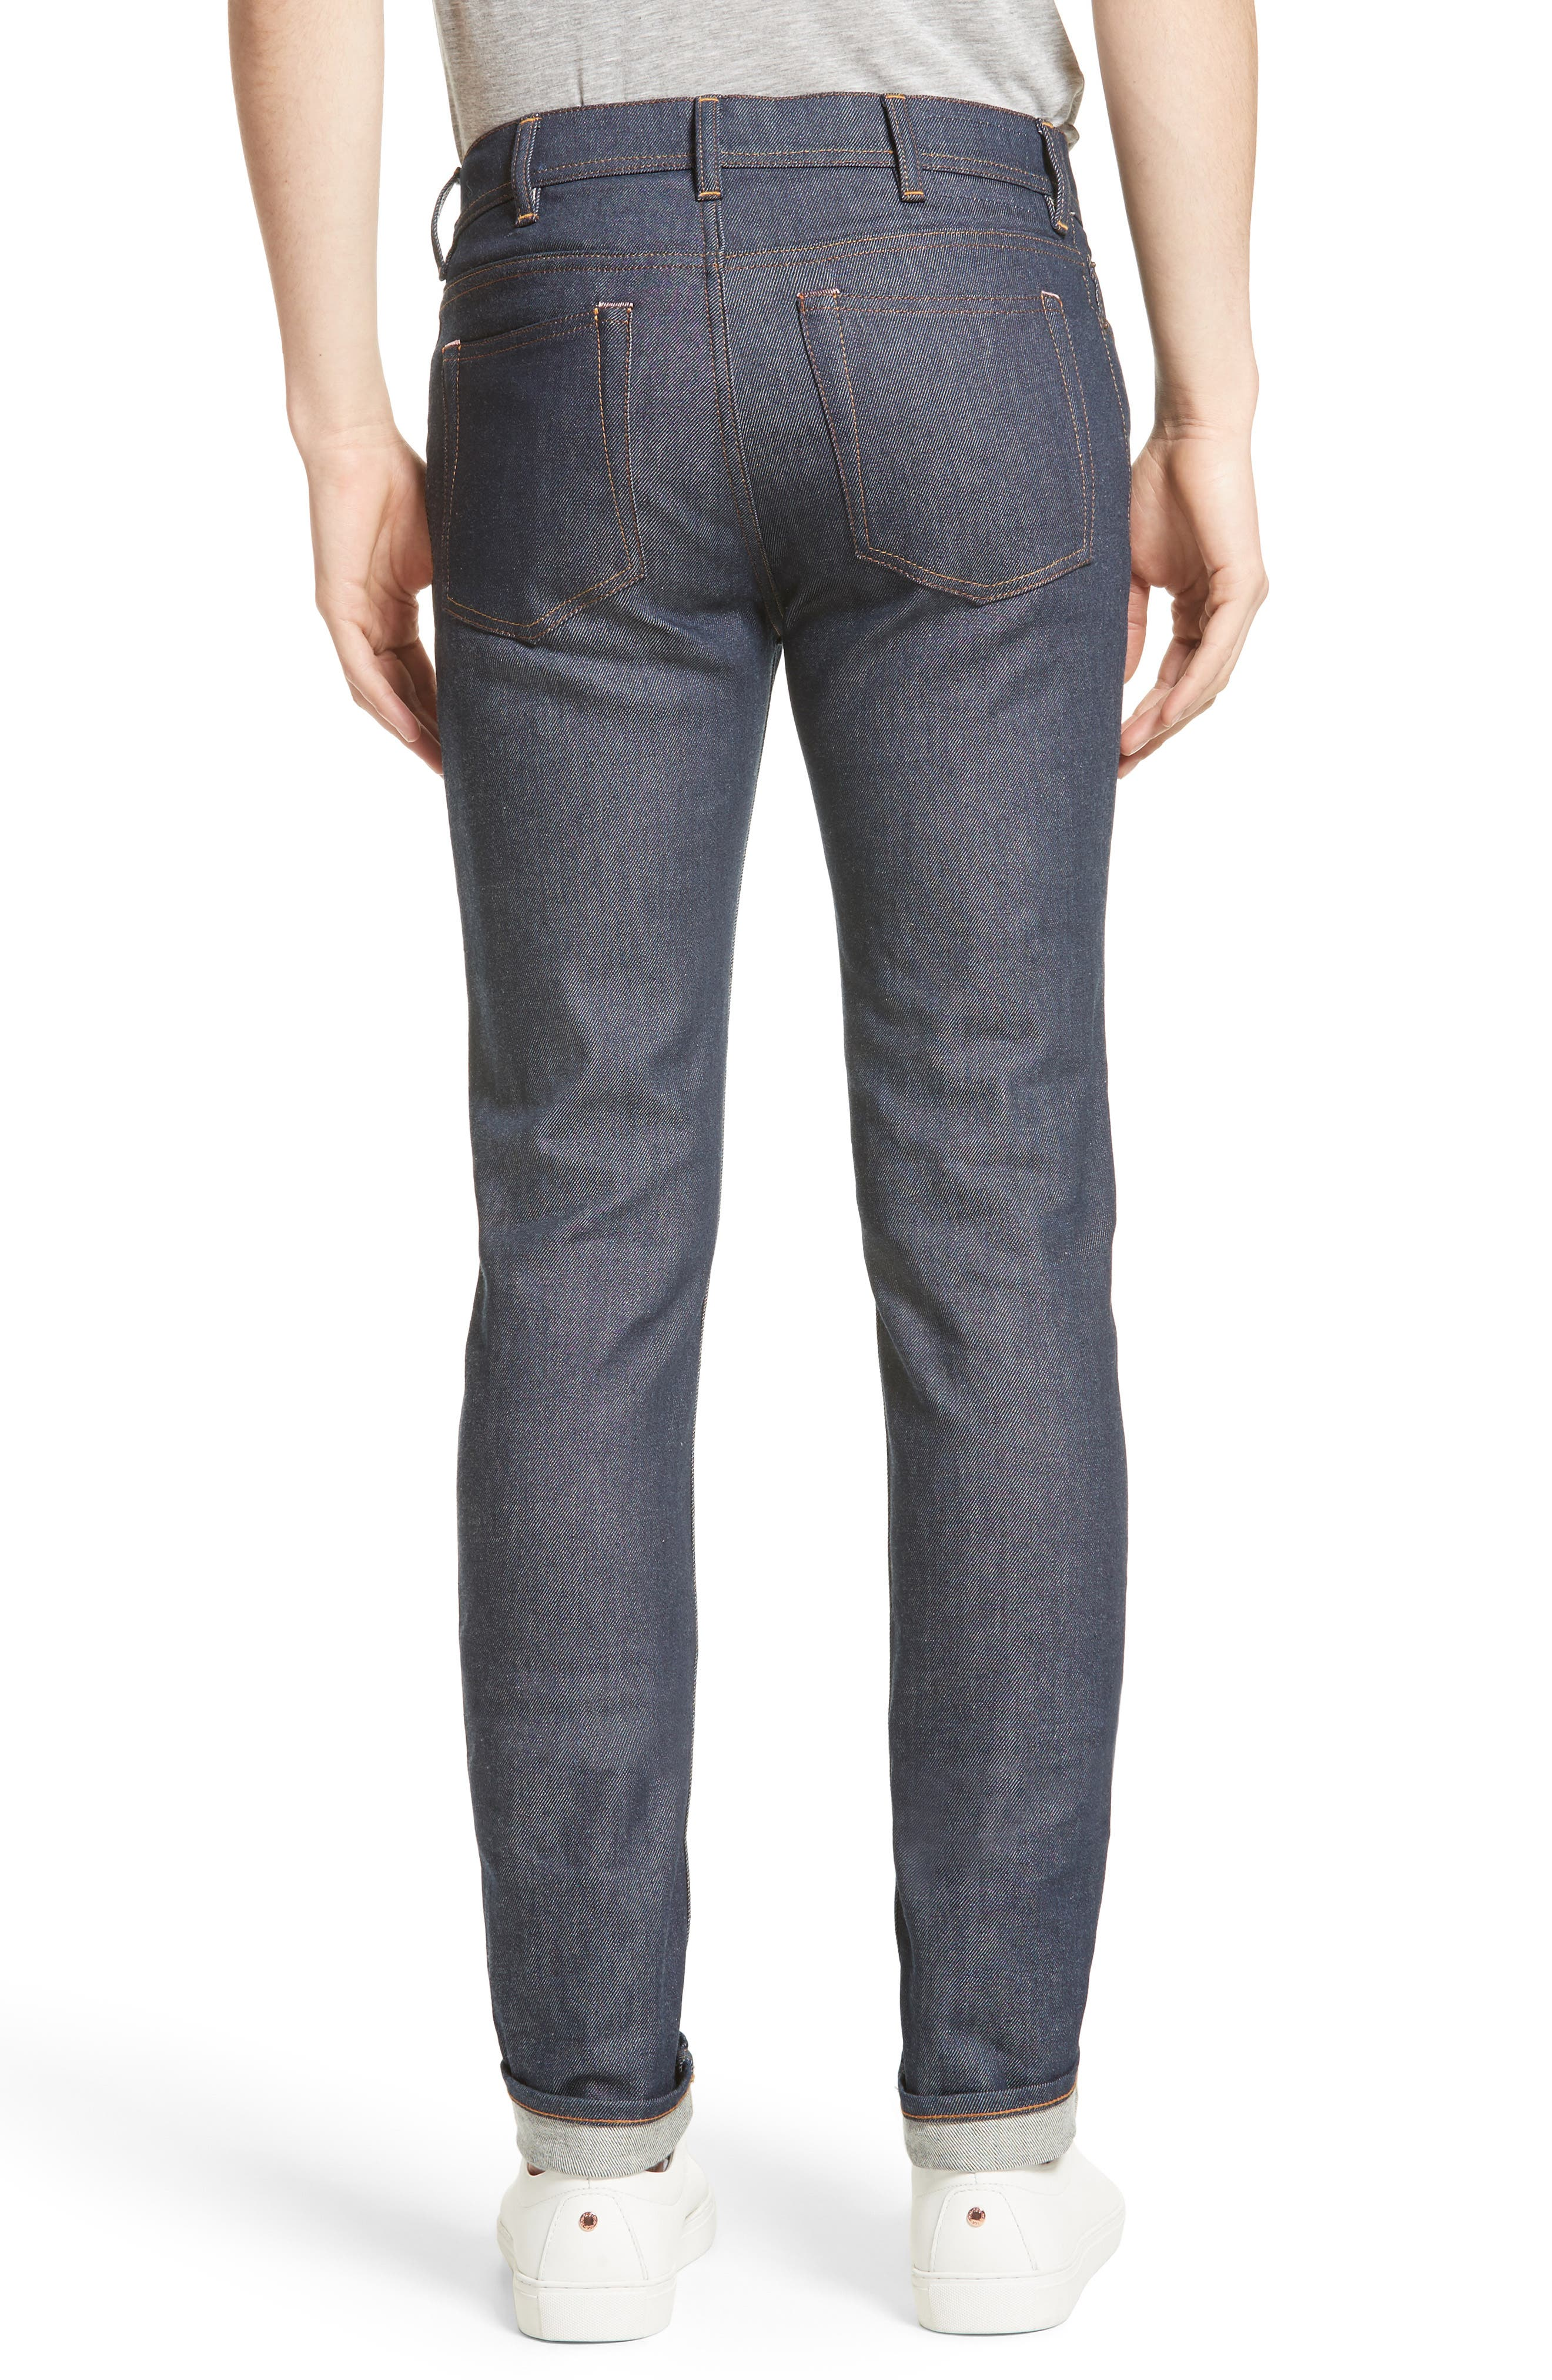 North Skinny Jeans,                             Alternate thumbnail 2, color,                             Indigo